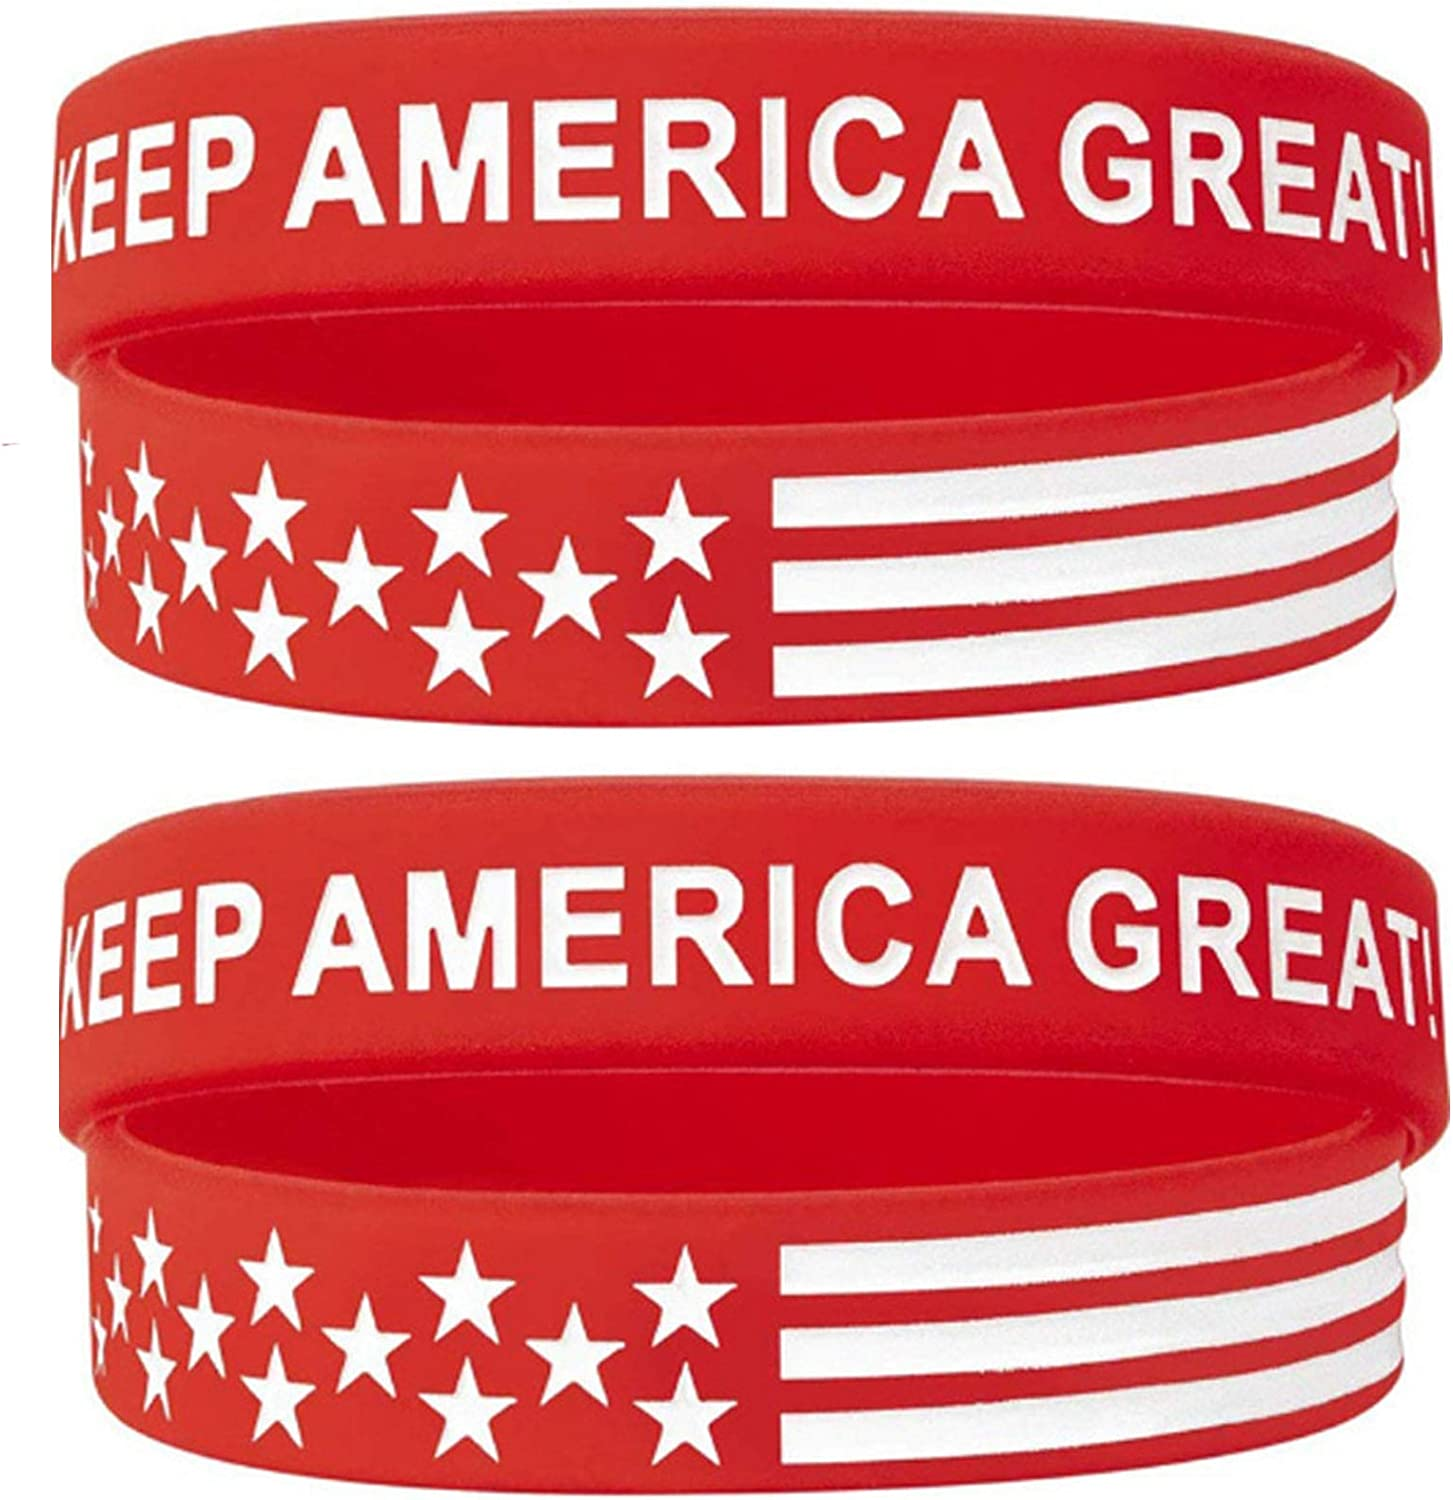 Support Awareness Trump 2020 Personalized Customizable Rubber Bracelets Women Premium Customized for Motivation Men Custom Luxe Silicone Wristbands Red Fundraisers Gifts Business Events